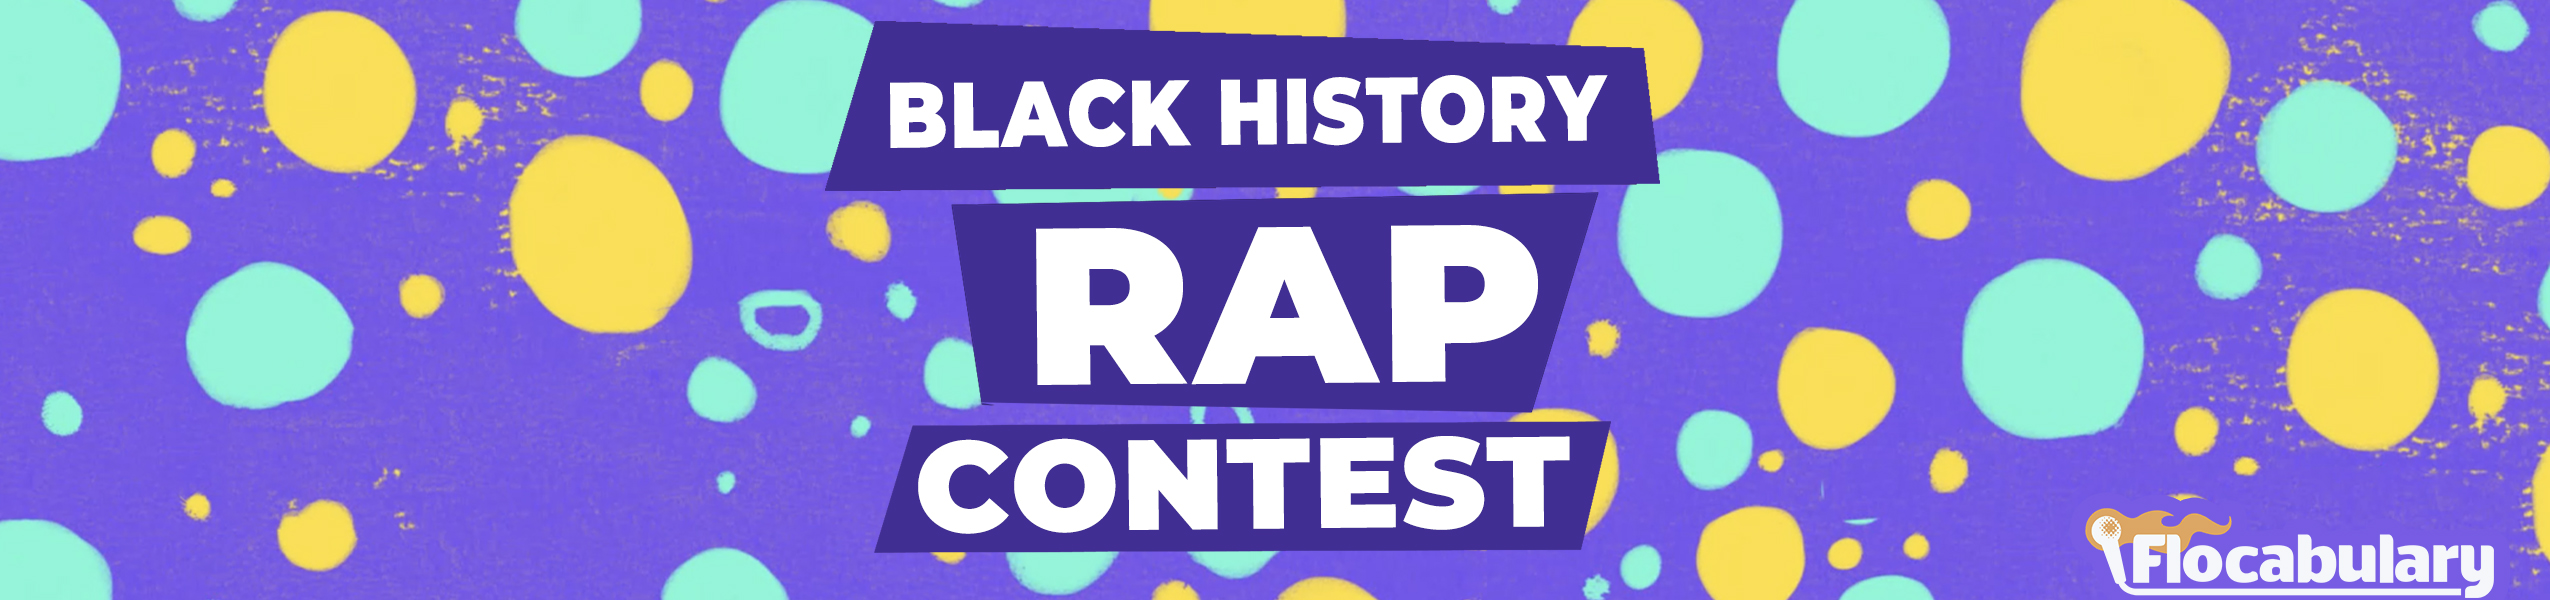 Black History Rap Contest Official Rules - The Flocabulary Blog